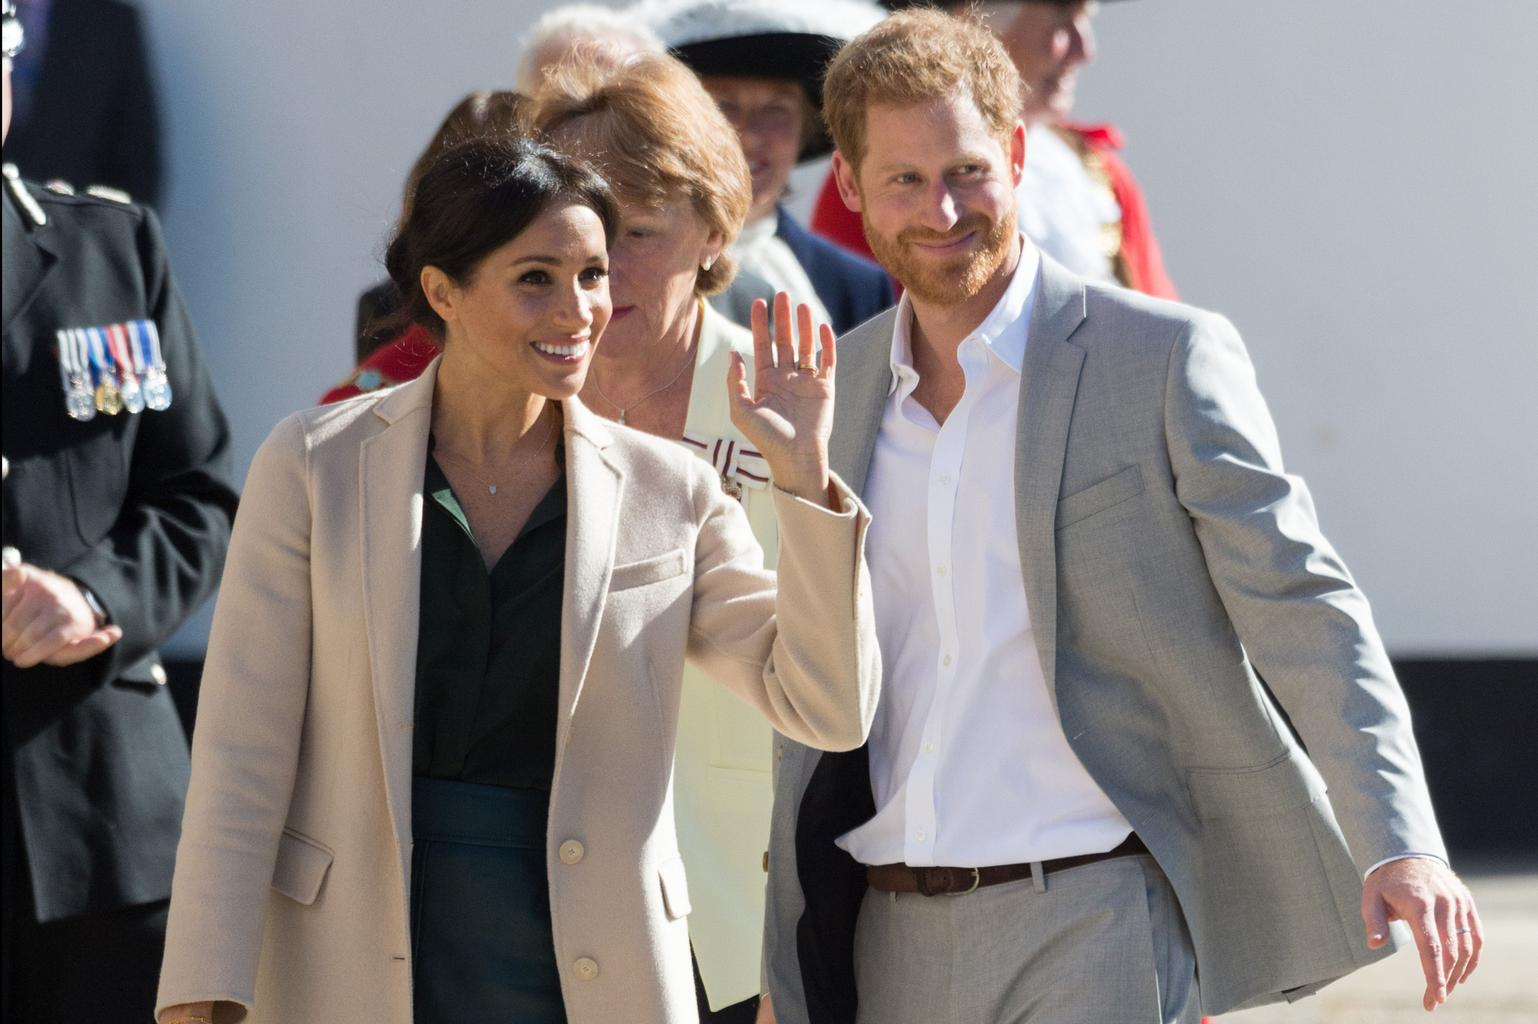 Meghan Markle & Prince Harry Show Parenting Skills With Adorable Kids